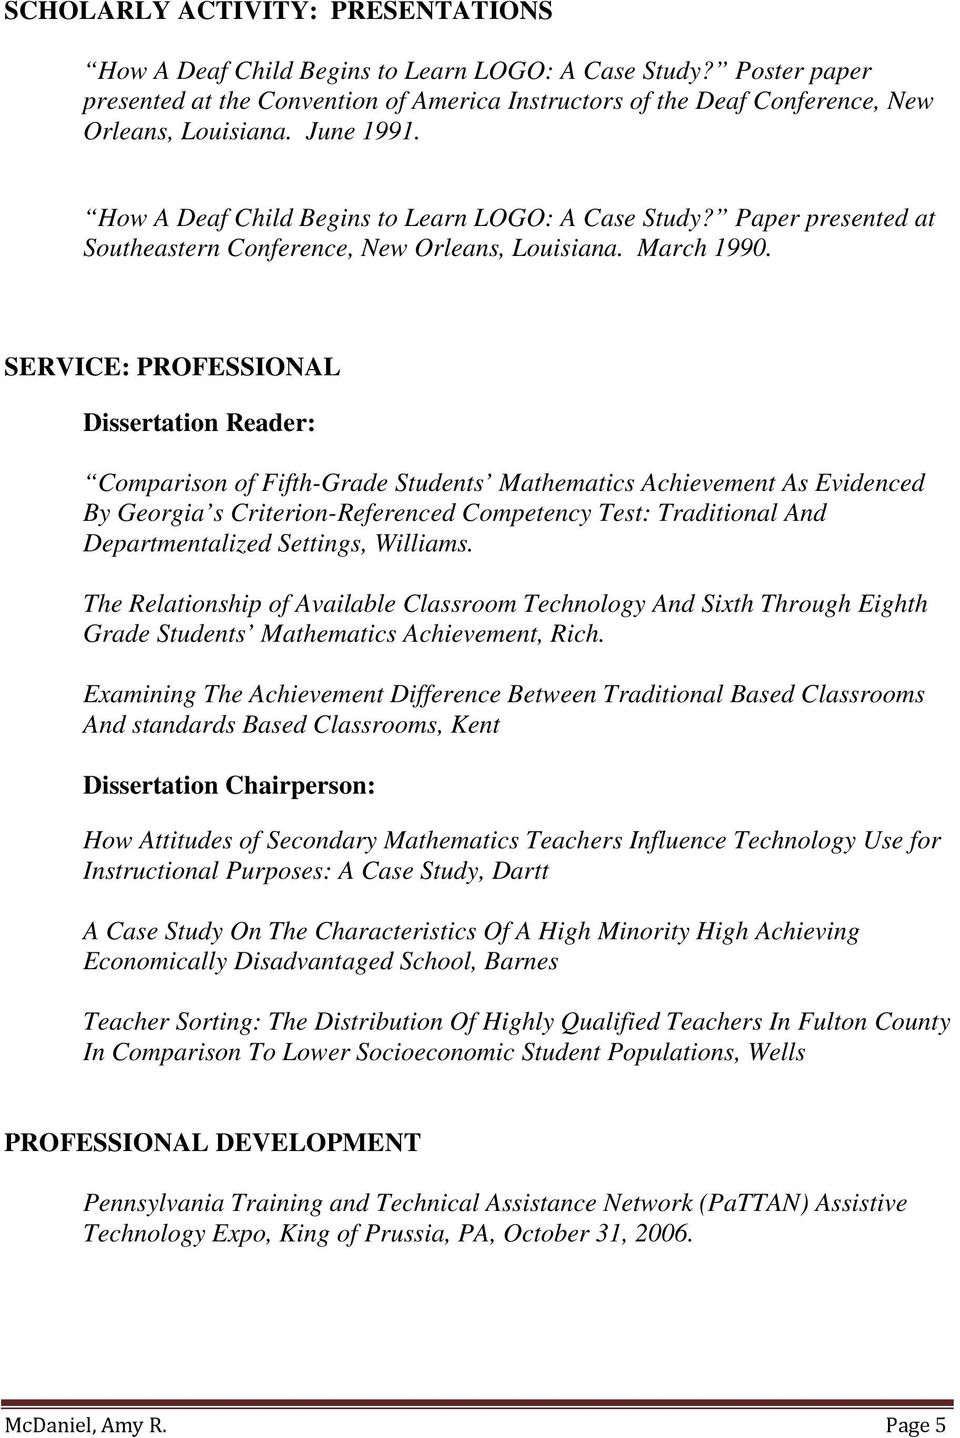 SERVICE: PROFESSIONAL Dissertation Reader: Comparison of Fifth-Grade Students Mathematics Achievement As Evidenced By Georgia s Criterion-Referenced Competency Test: Traditional And Departmentalized